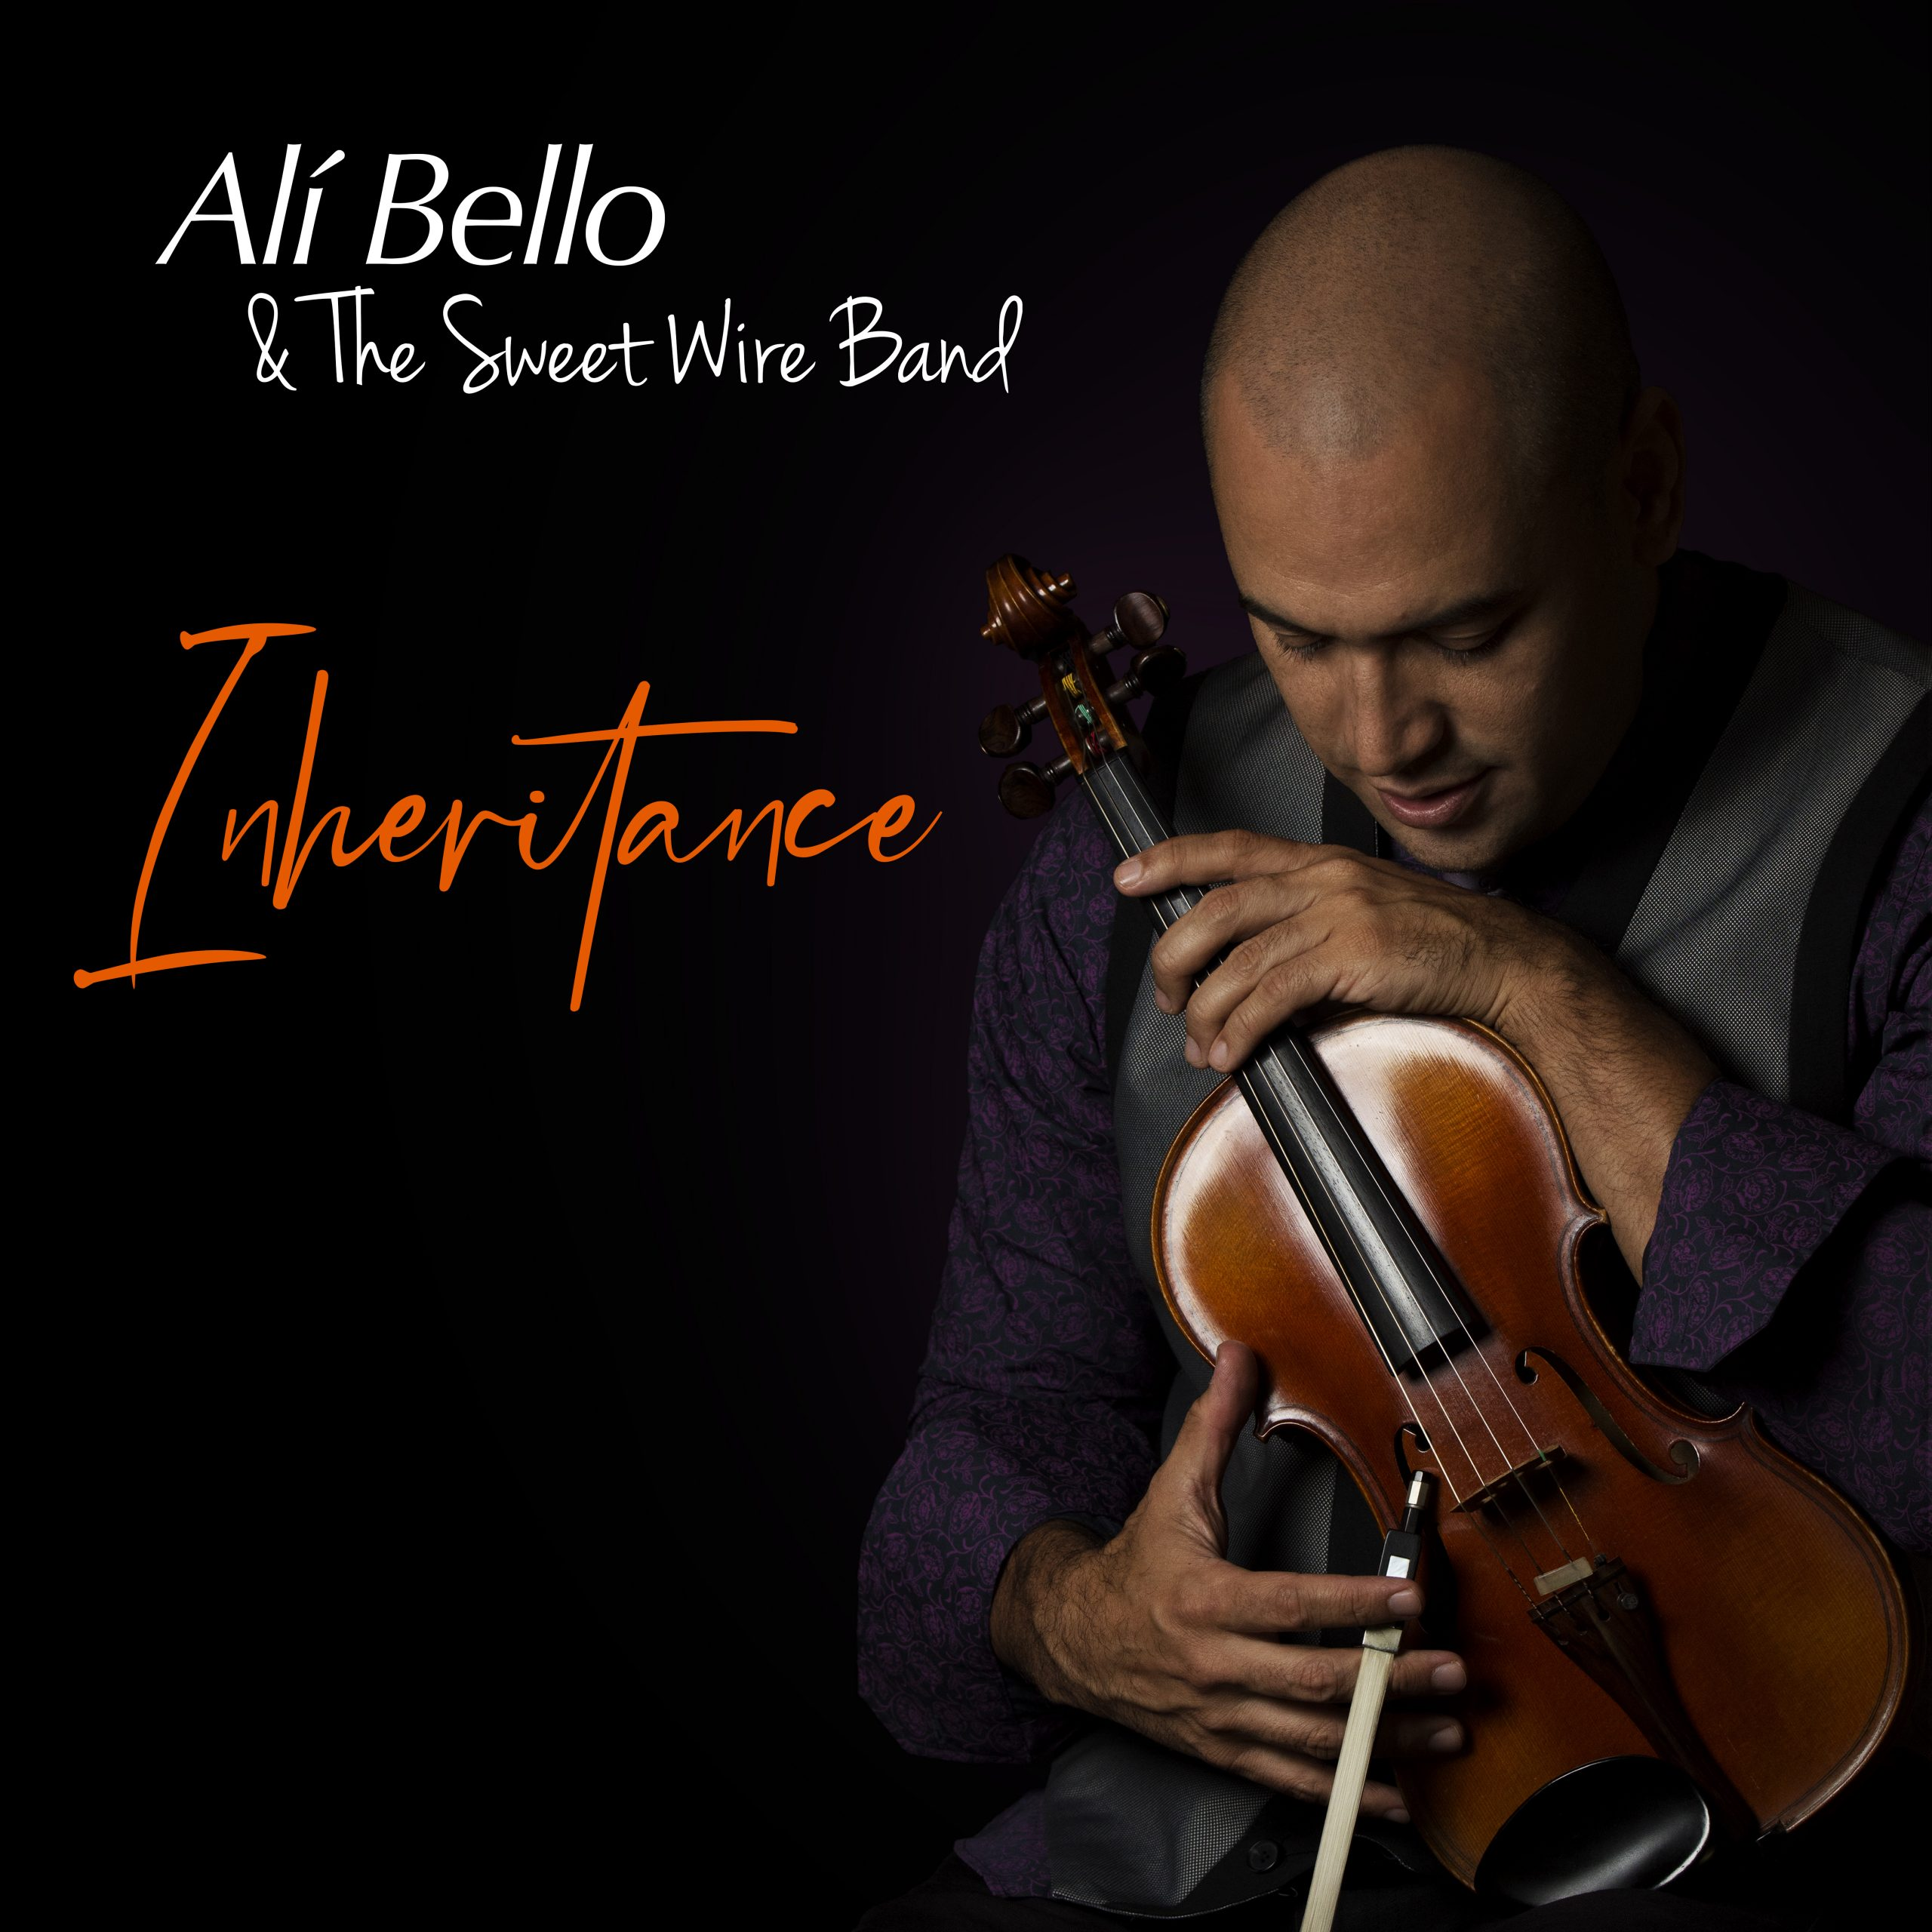 NEW RELEASE: Renowned Violinist Alí Bello To Release 'Inheritance' Leading the Sweet Wire Band, New Album Due Out May 7 via Tiger Turn